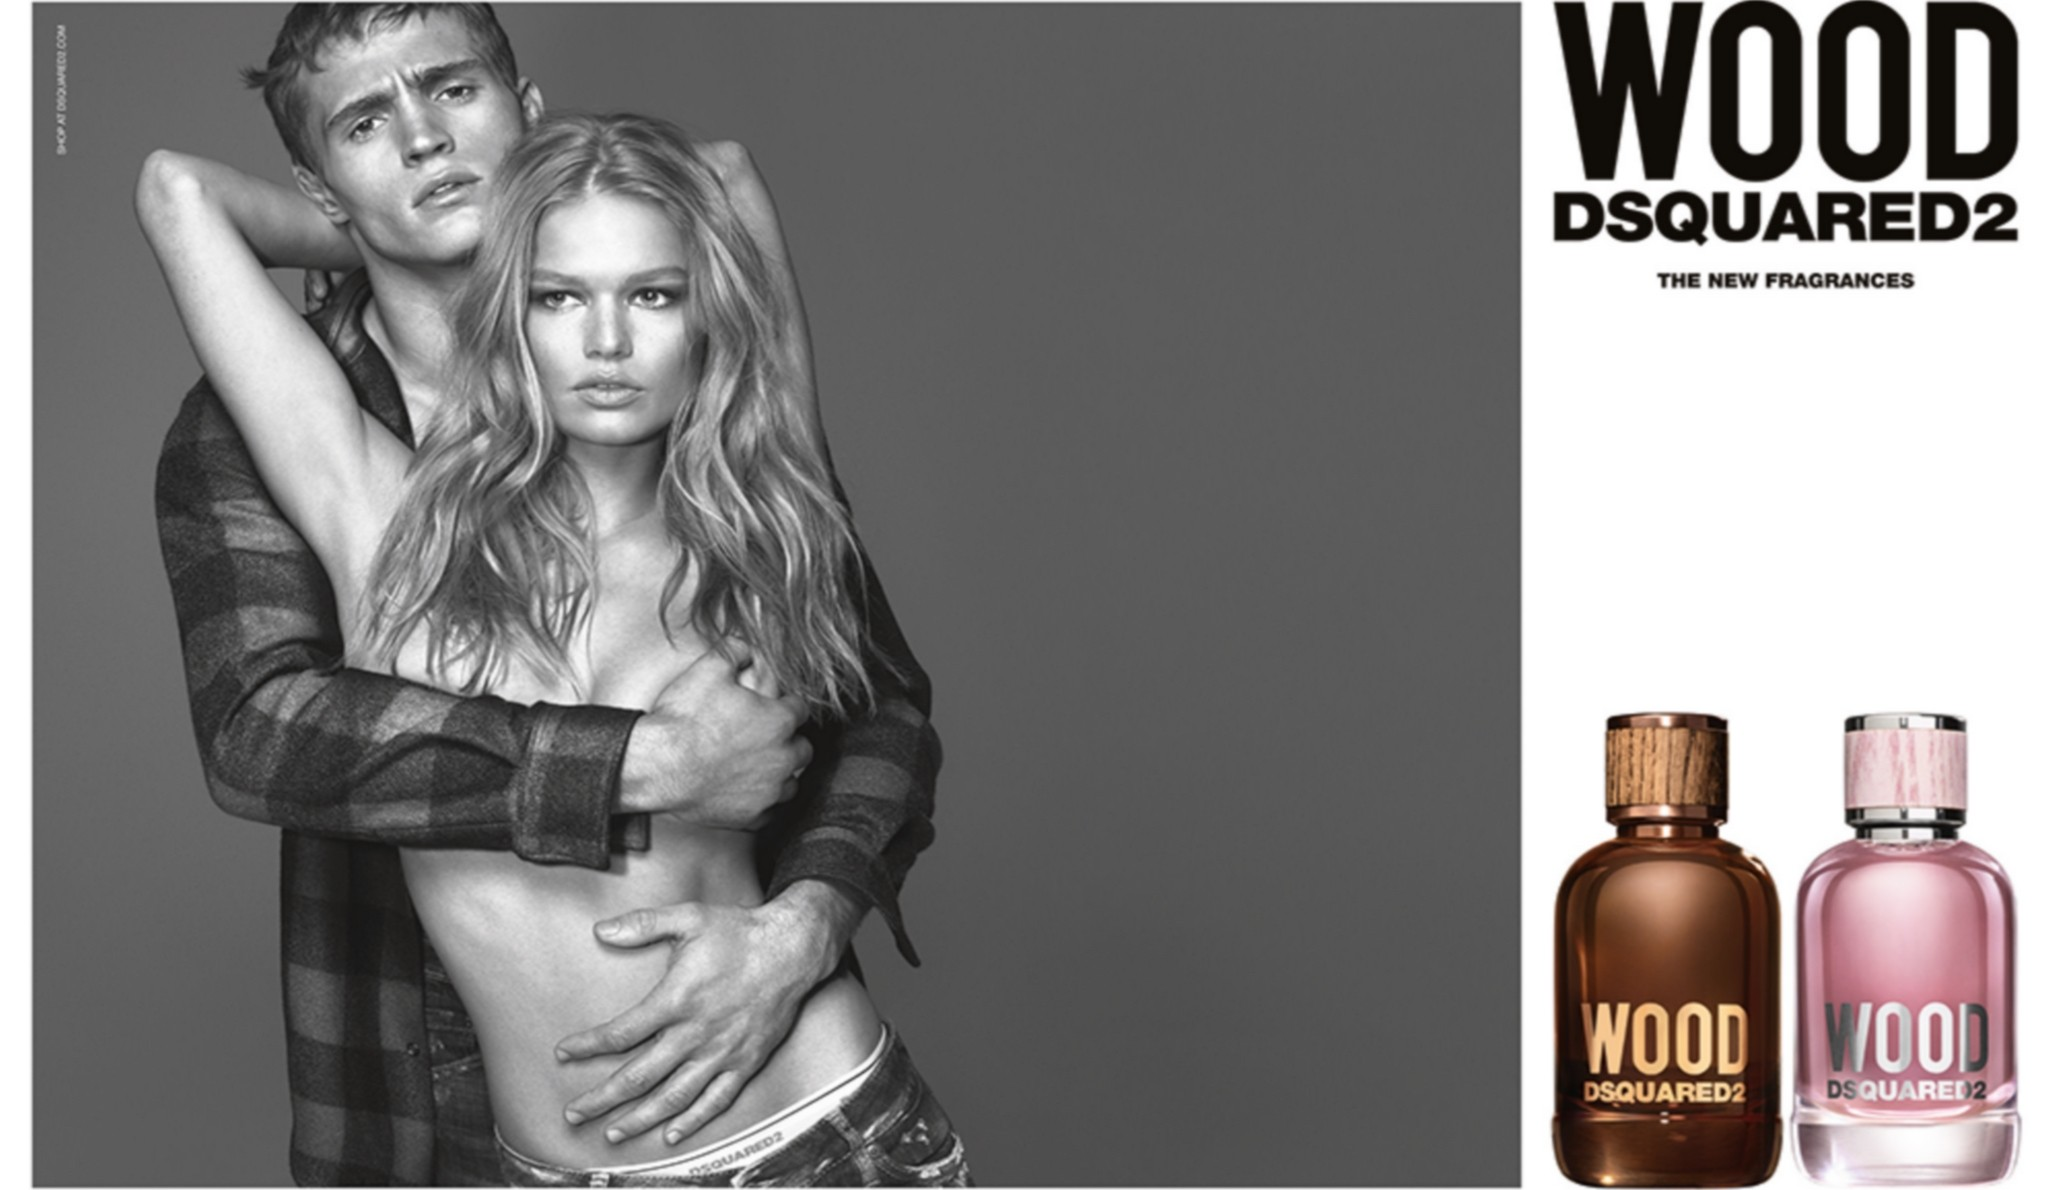 Vivi le tue passioni con Dsquared² Wood